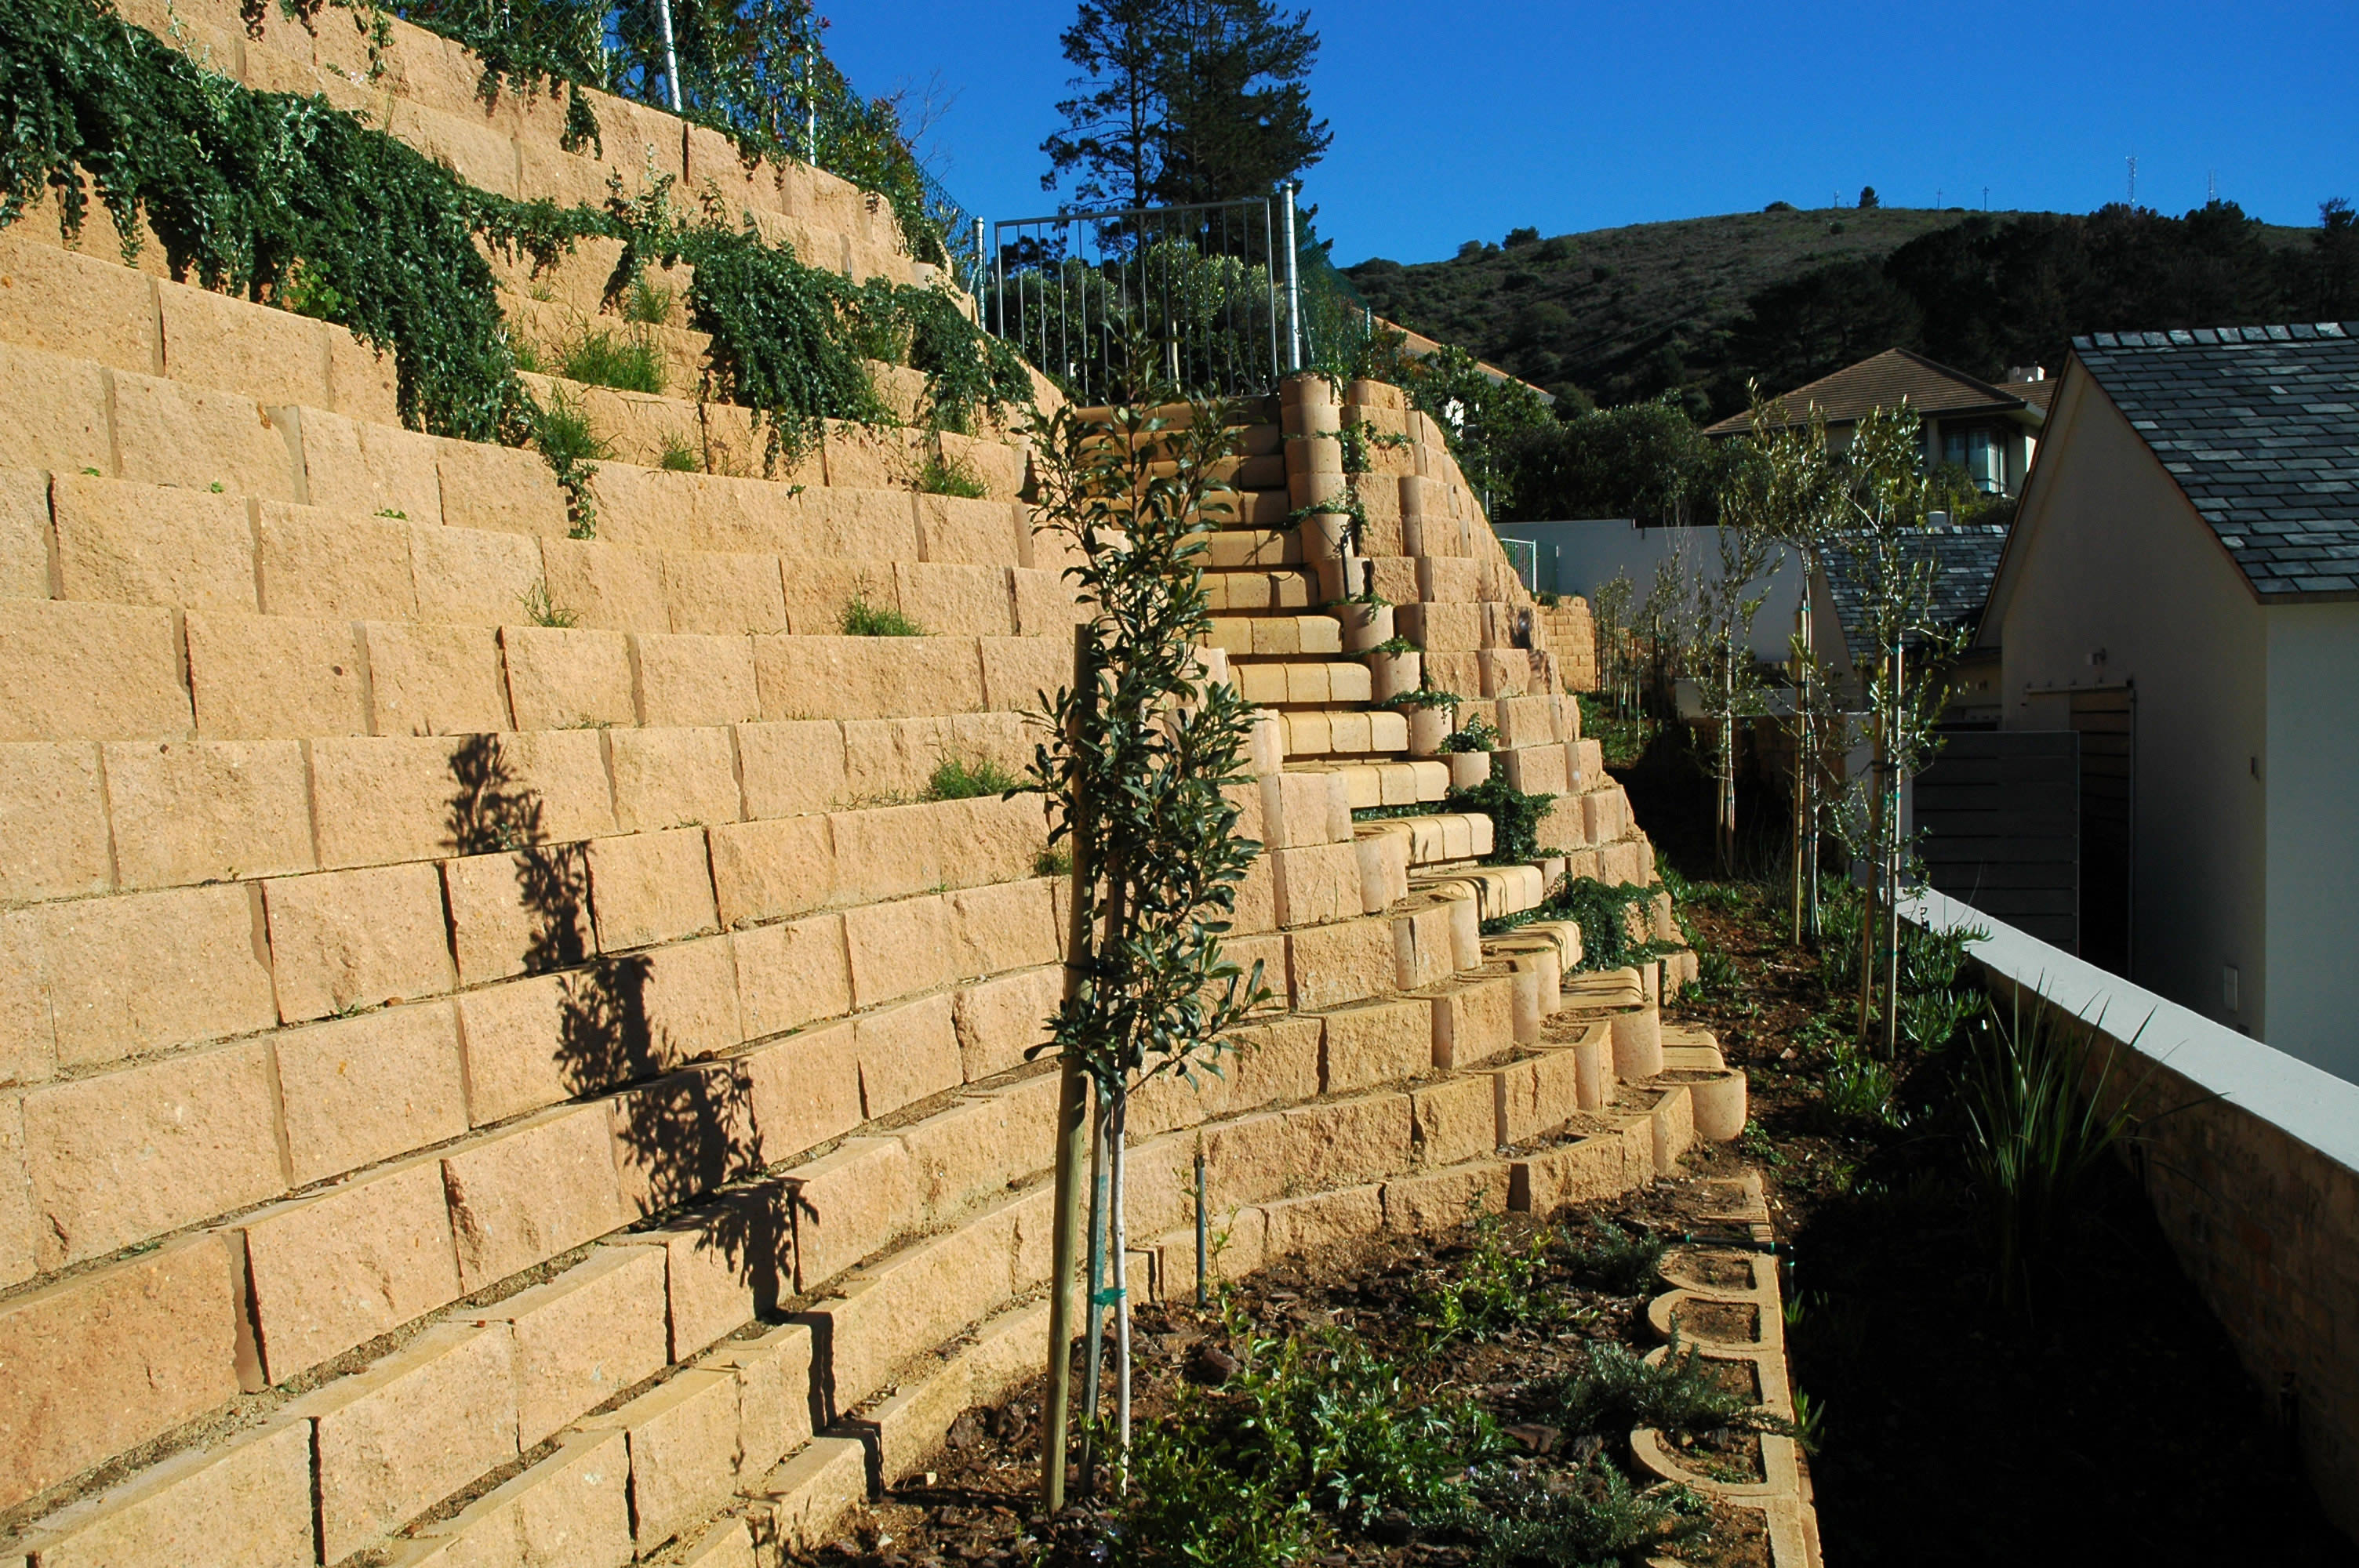 4x4 Multi Step blocks were incorporated to provide comfortable access to the different levels.